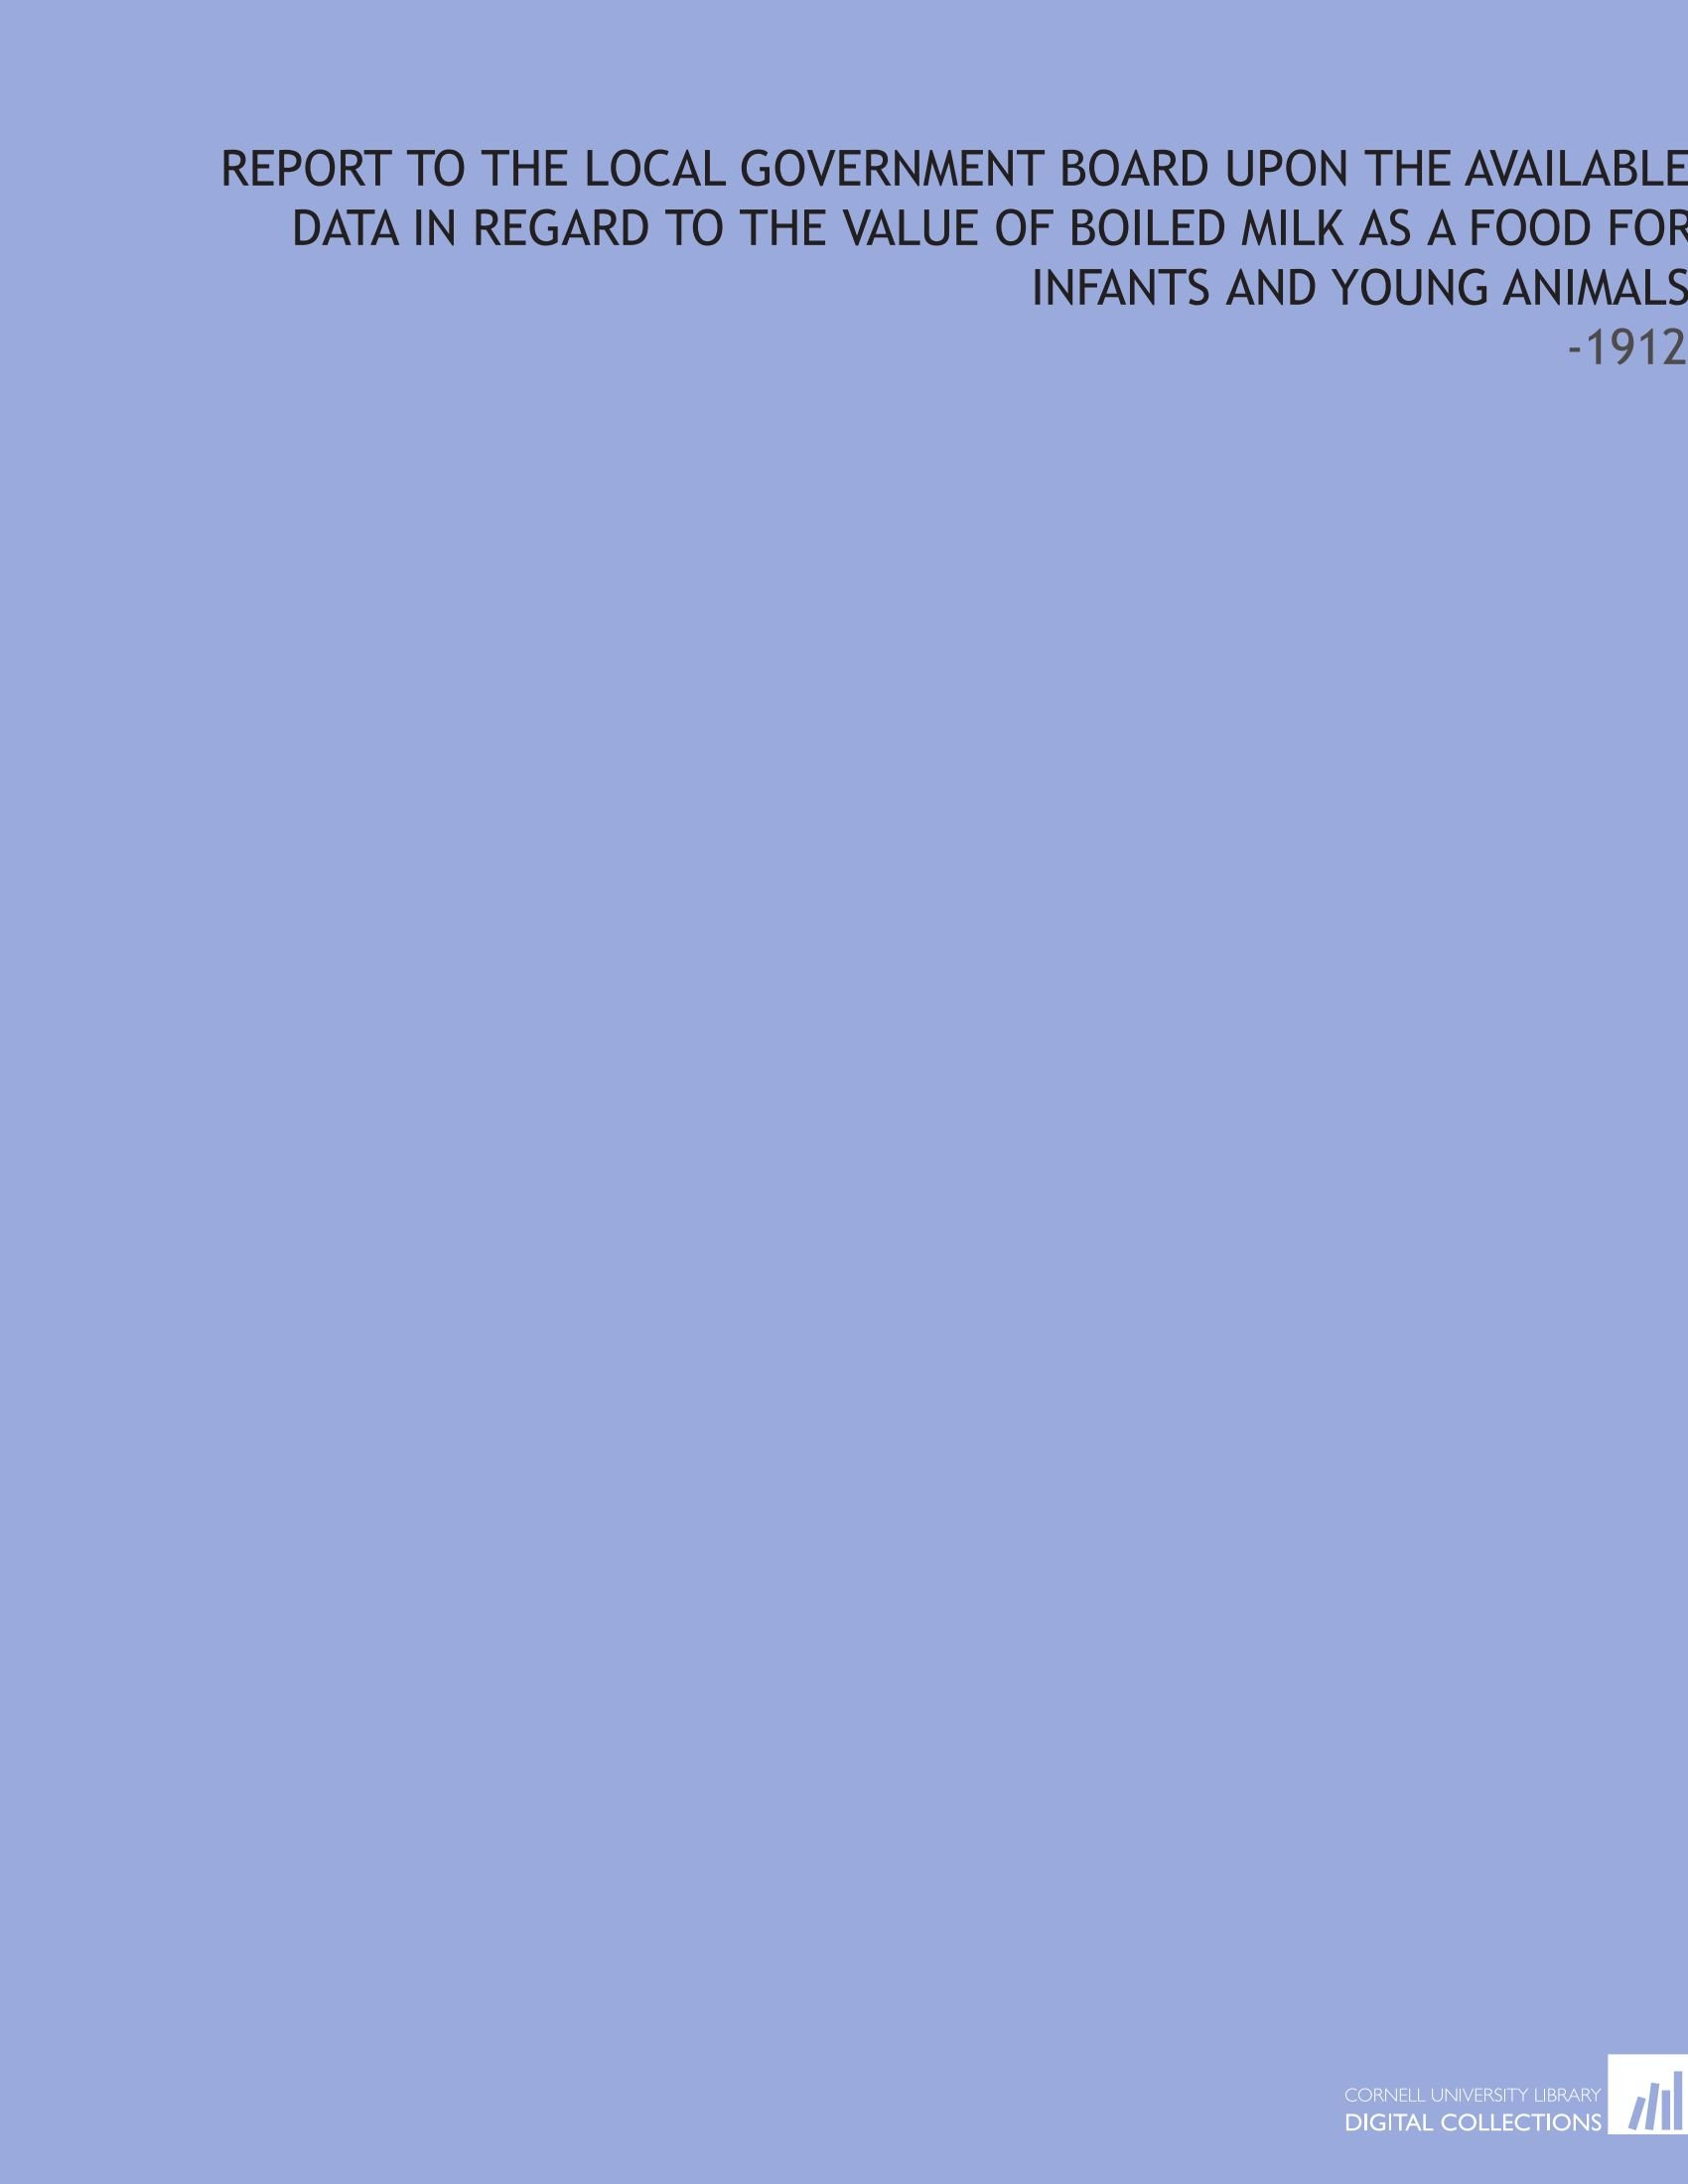 Download Report to the Local Government Board Upon the Available Data in Regard to the Value of Boiled Milk as a Food for Infants and Young Animals: -1912 PDF